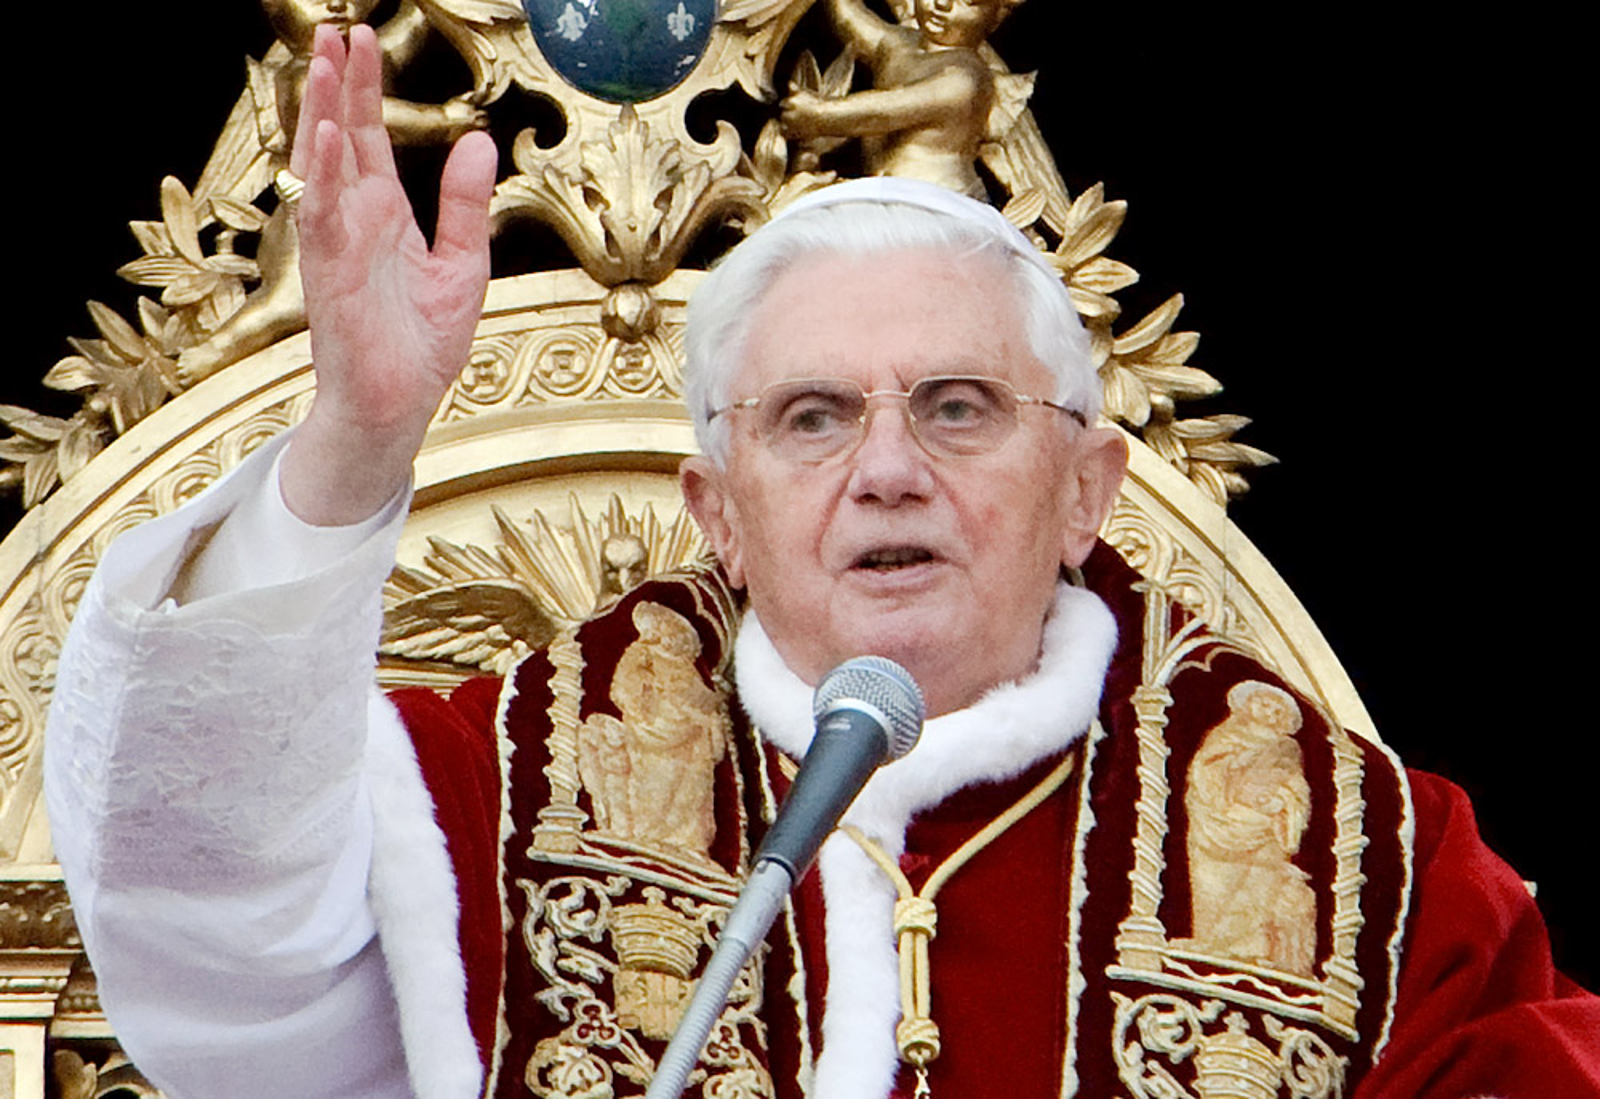 Pope Vows To Get Church Pedophilia Down To Acceptable Levels